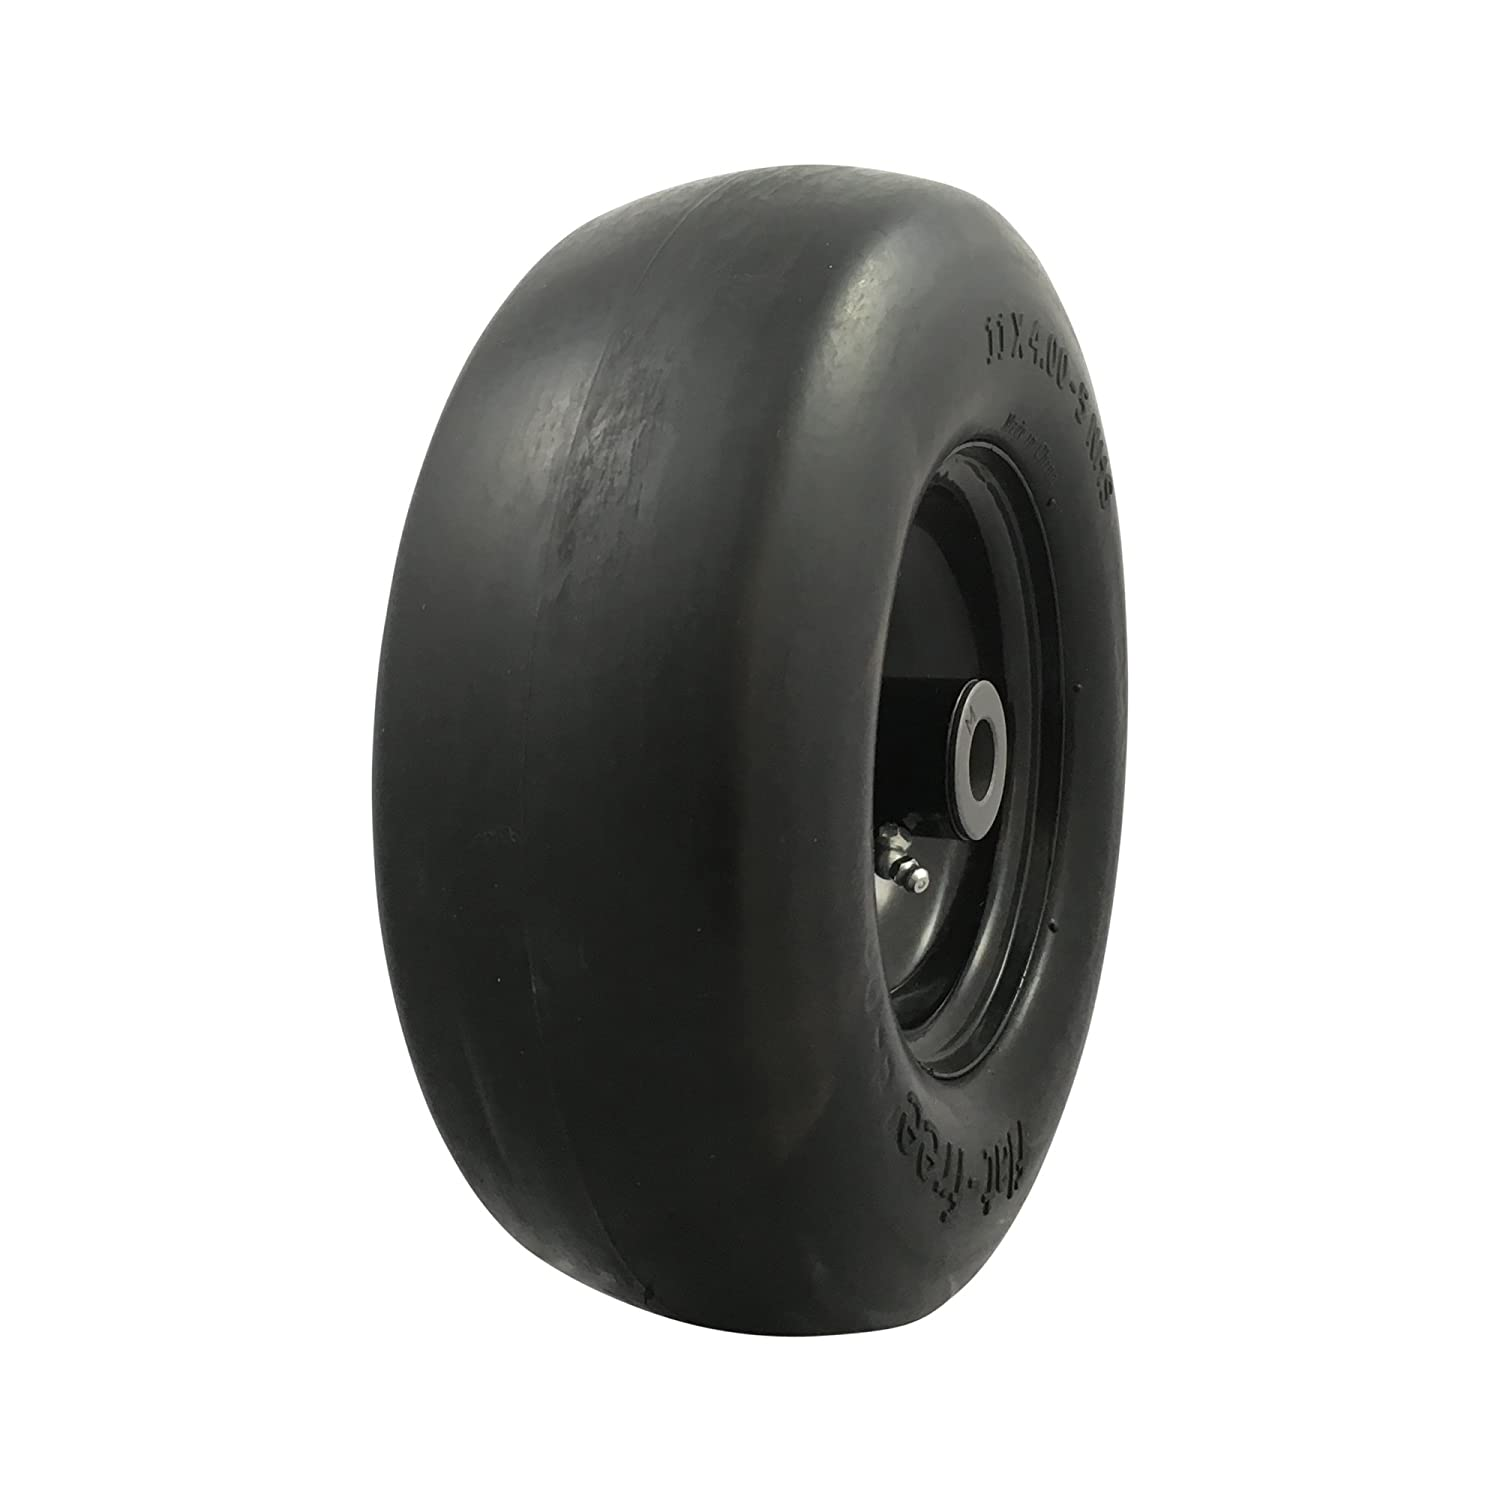 MARASTAR 00232 Universal Fit Flat Free 11 x4.00-5 Lawnmower Tire Assembly